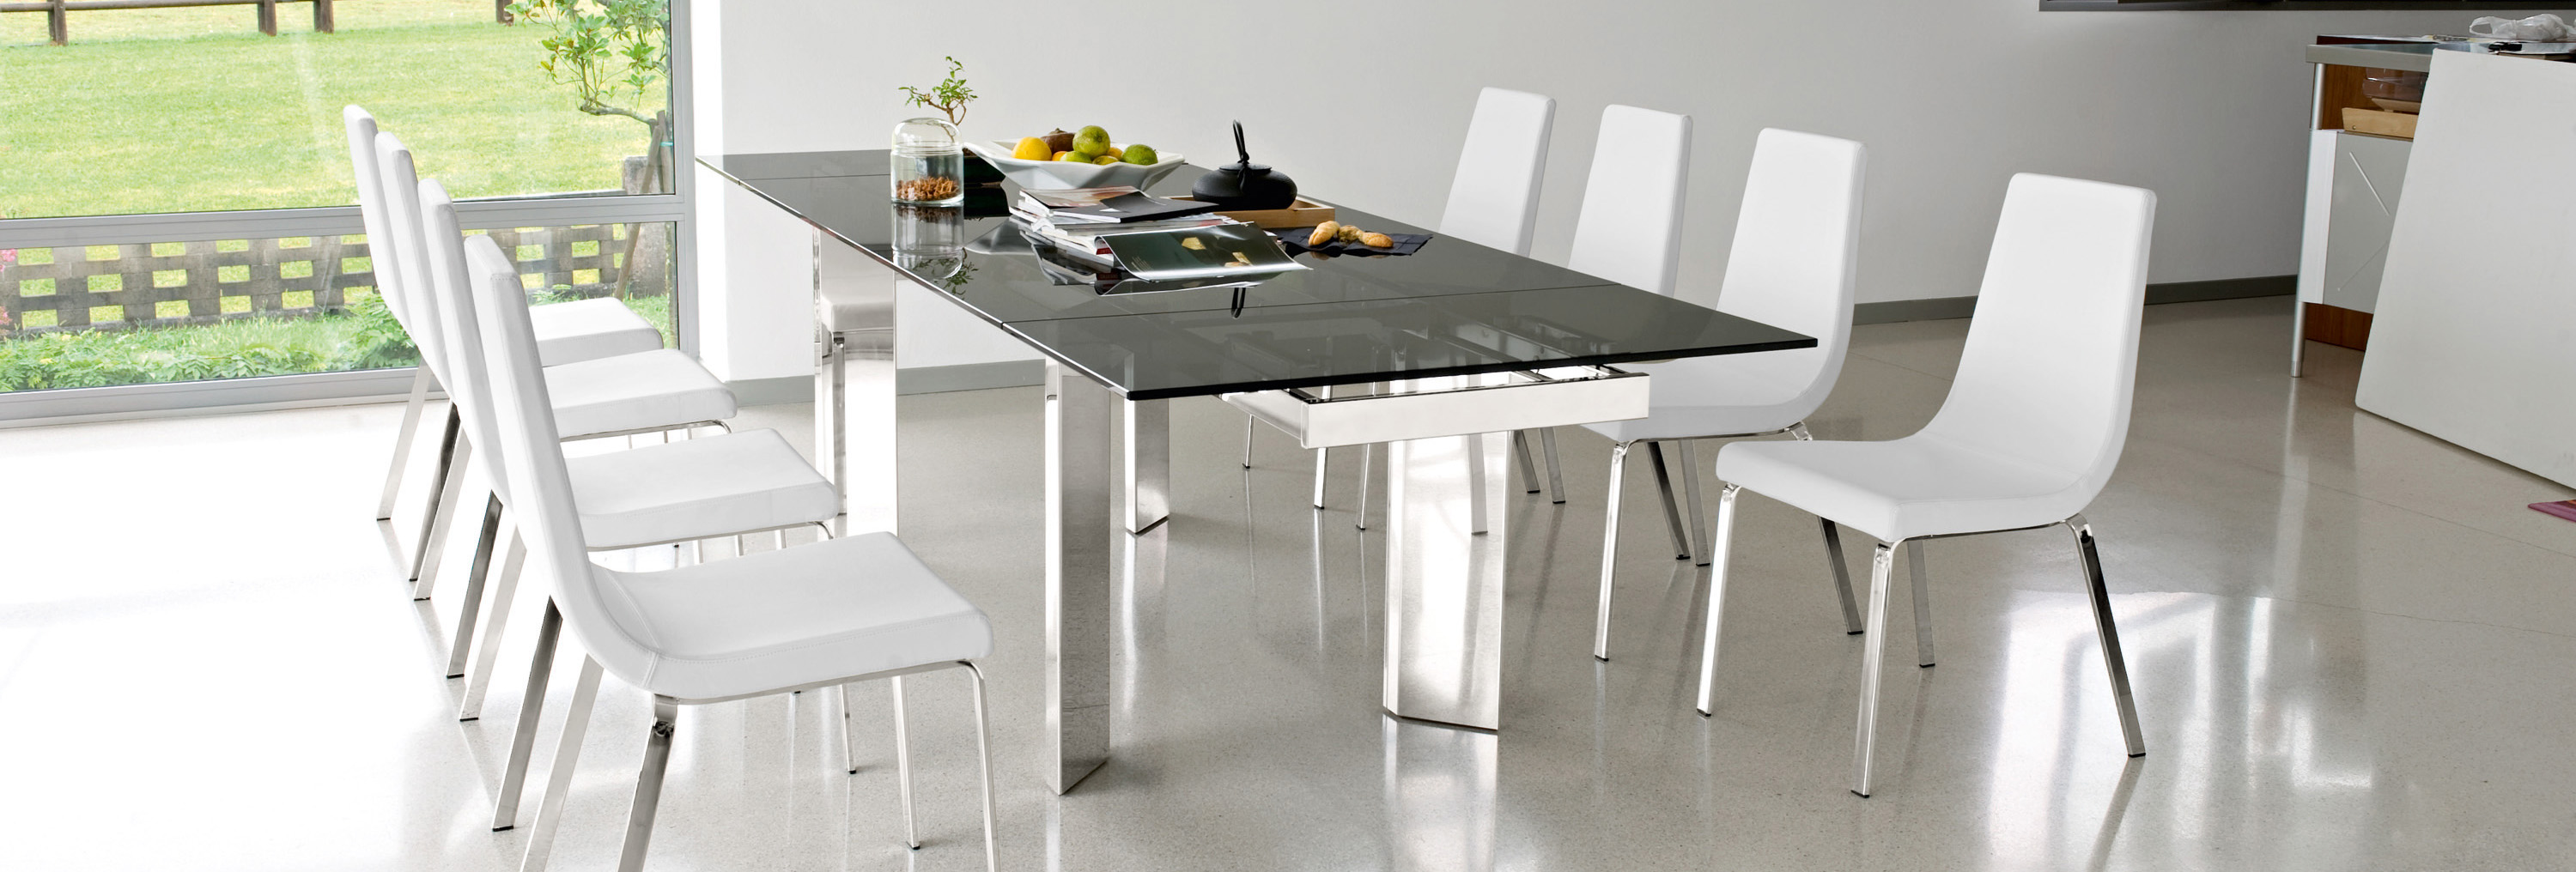 Calligaris Tower Modern Extendable Glass Dining Table  : cs4057 rgtgcs1095 lh700 from calligarisla.com size 3000 x 1016 jpeg 591kB